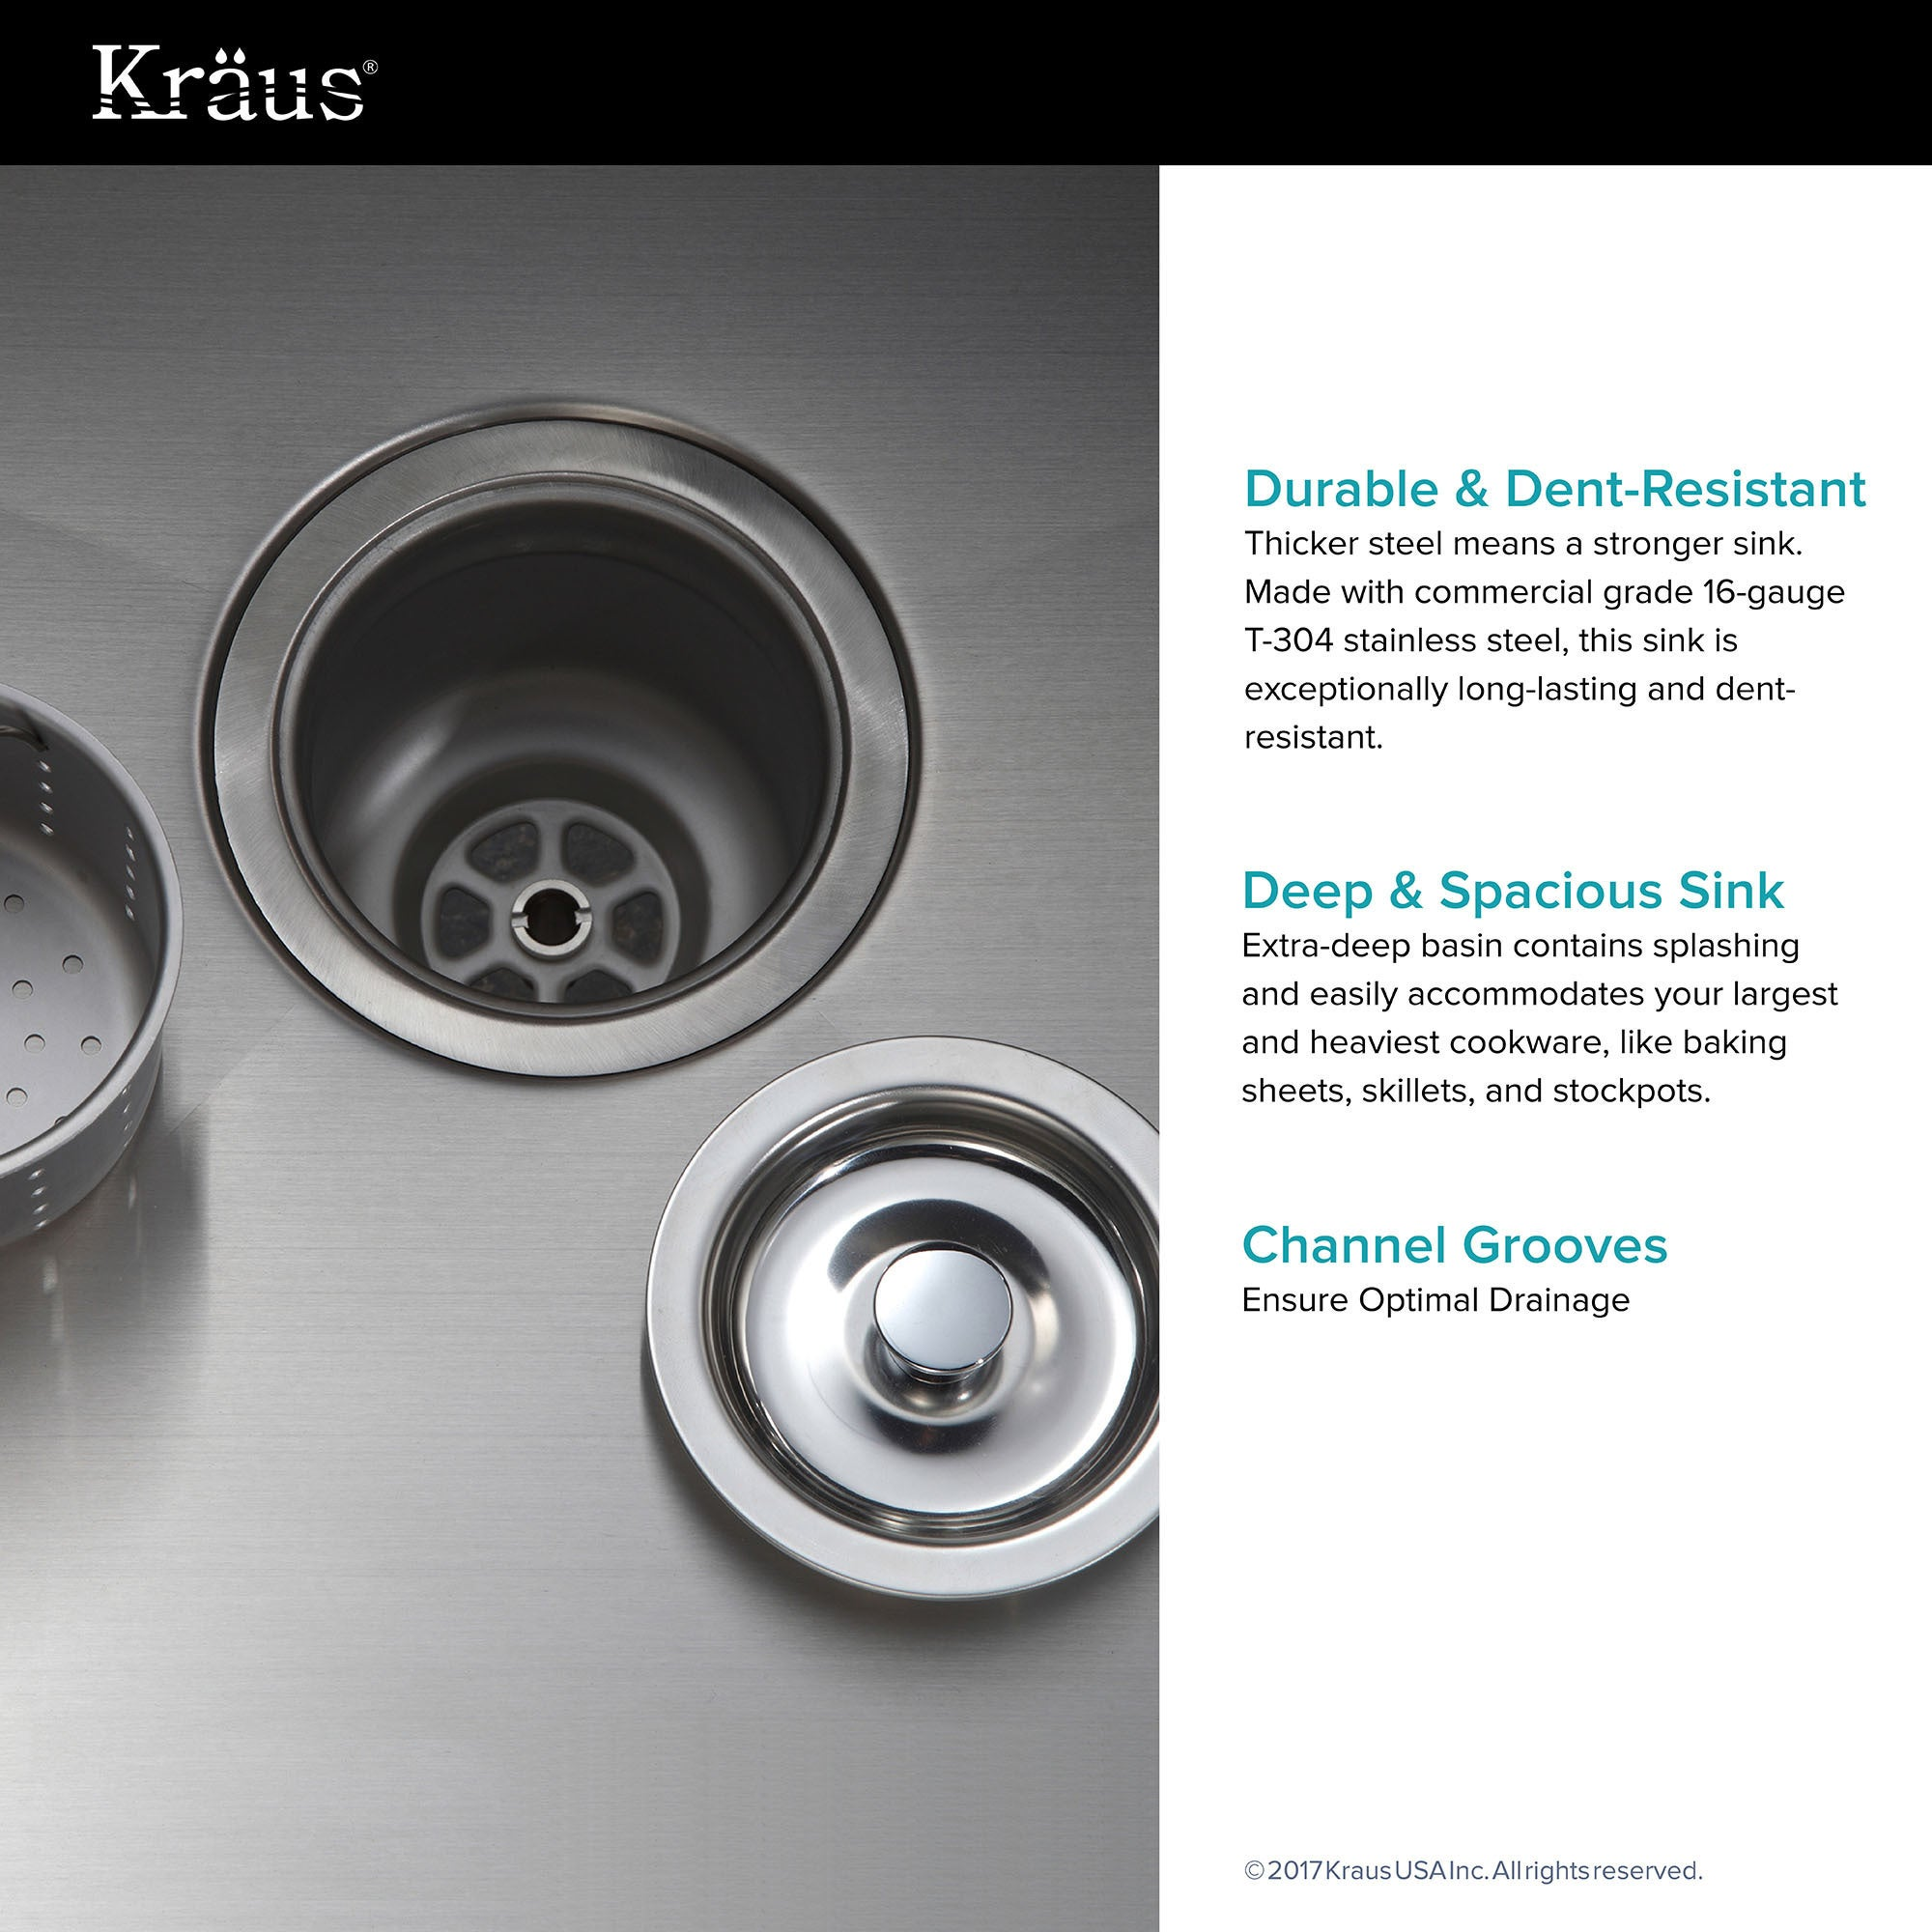 Shop Kraus Khu100 30 Standart Pro Undermount Inch 16 Gauge Single Garbage Disposal Decorator Switch Bowl Satin Stainless Steel Kitchen Sink Free Shipping Today 3381330